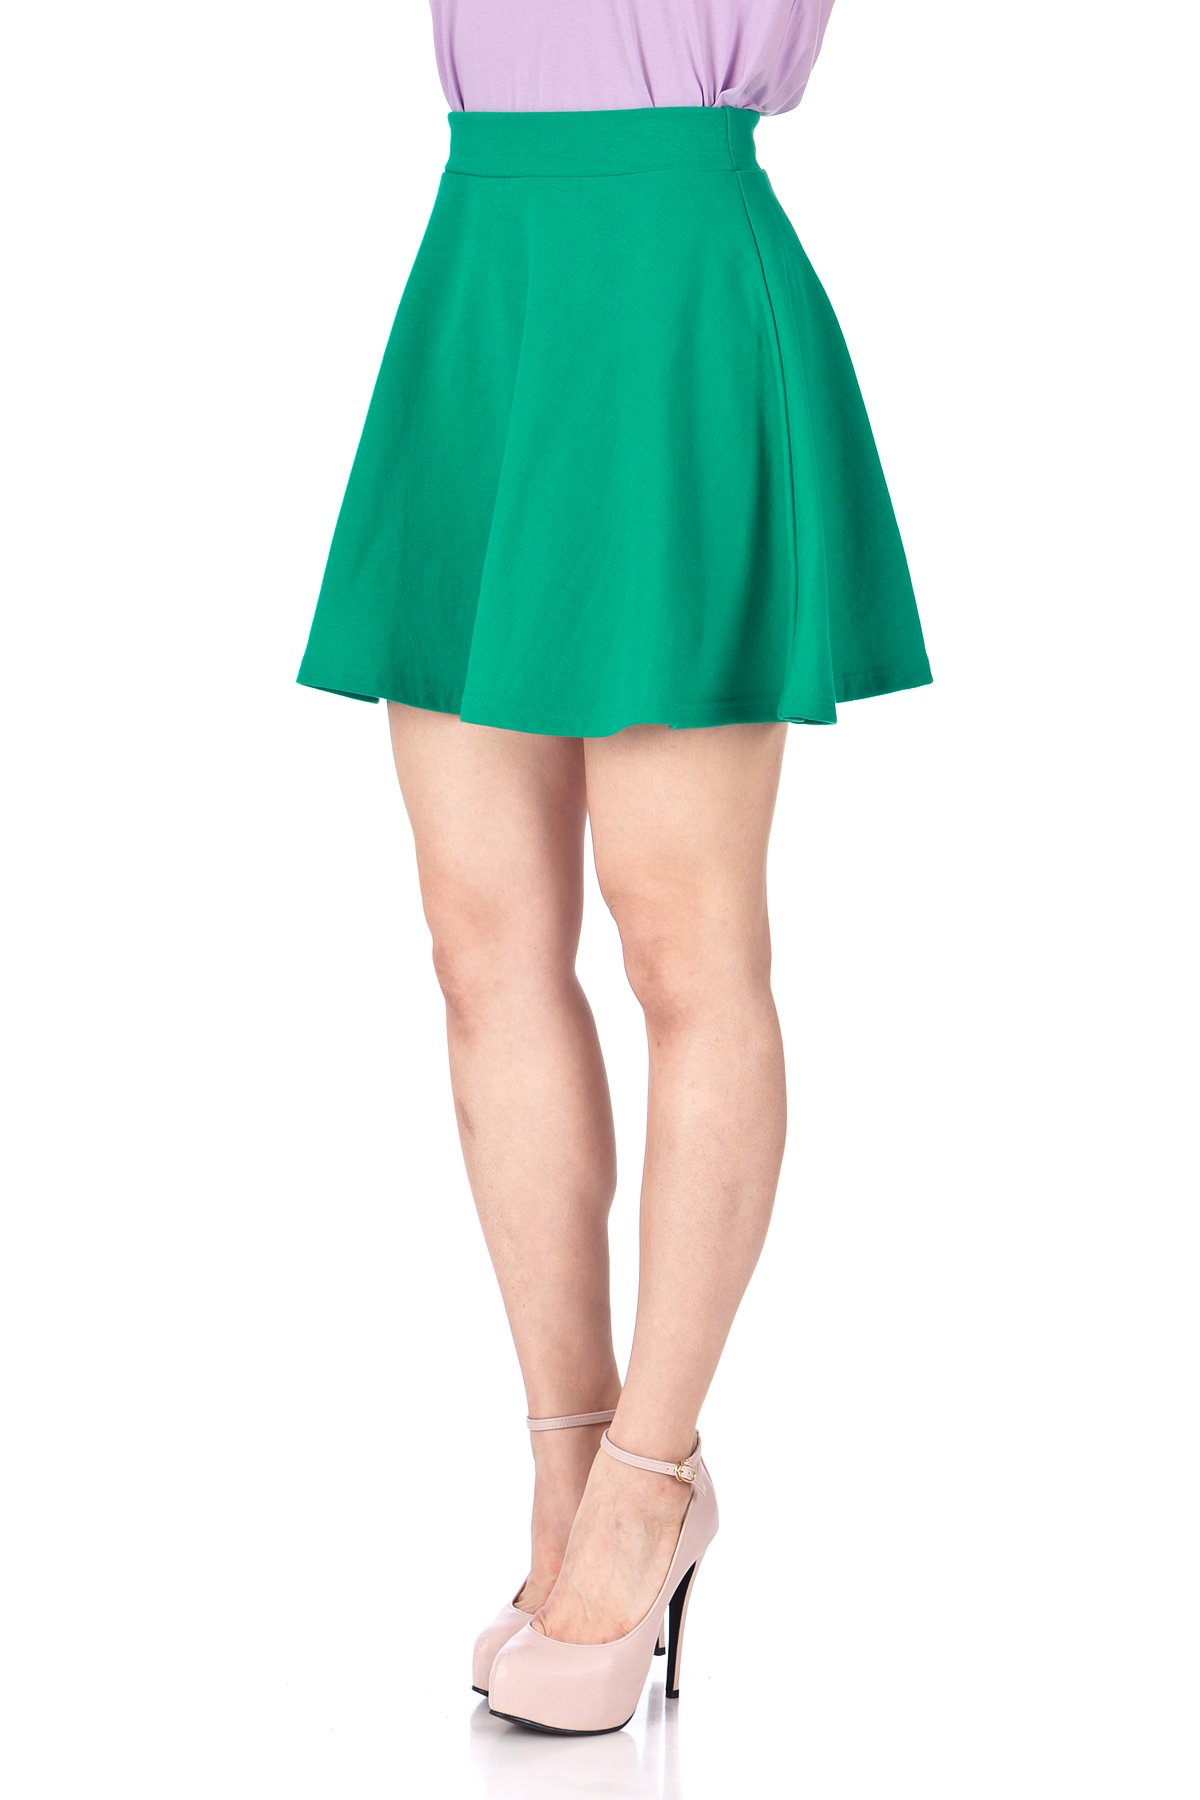 Basic Solid Stretchy Cotton High Waist A line Flared Skater Mini Skirt Green 06